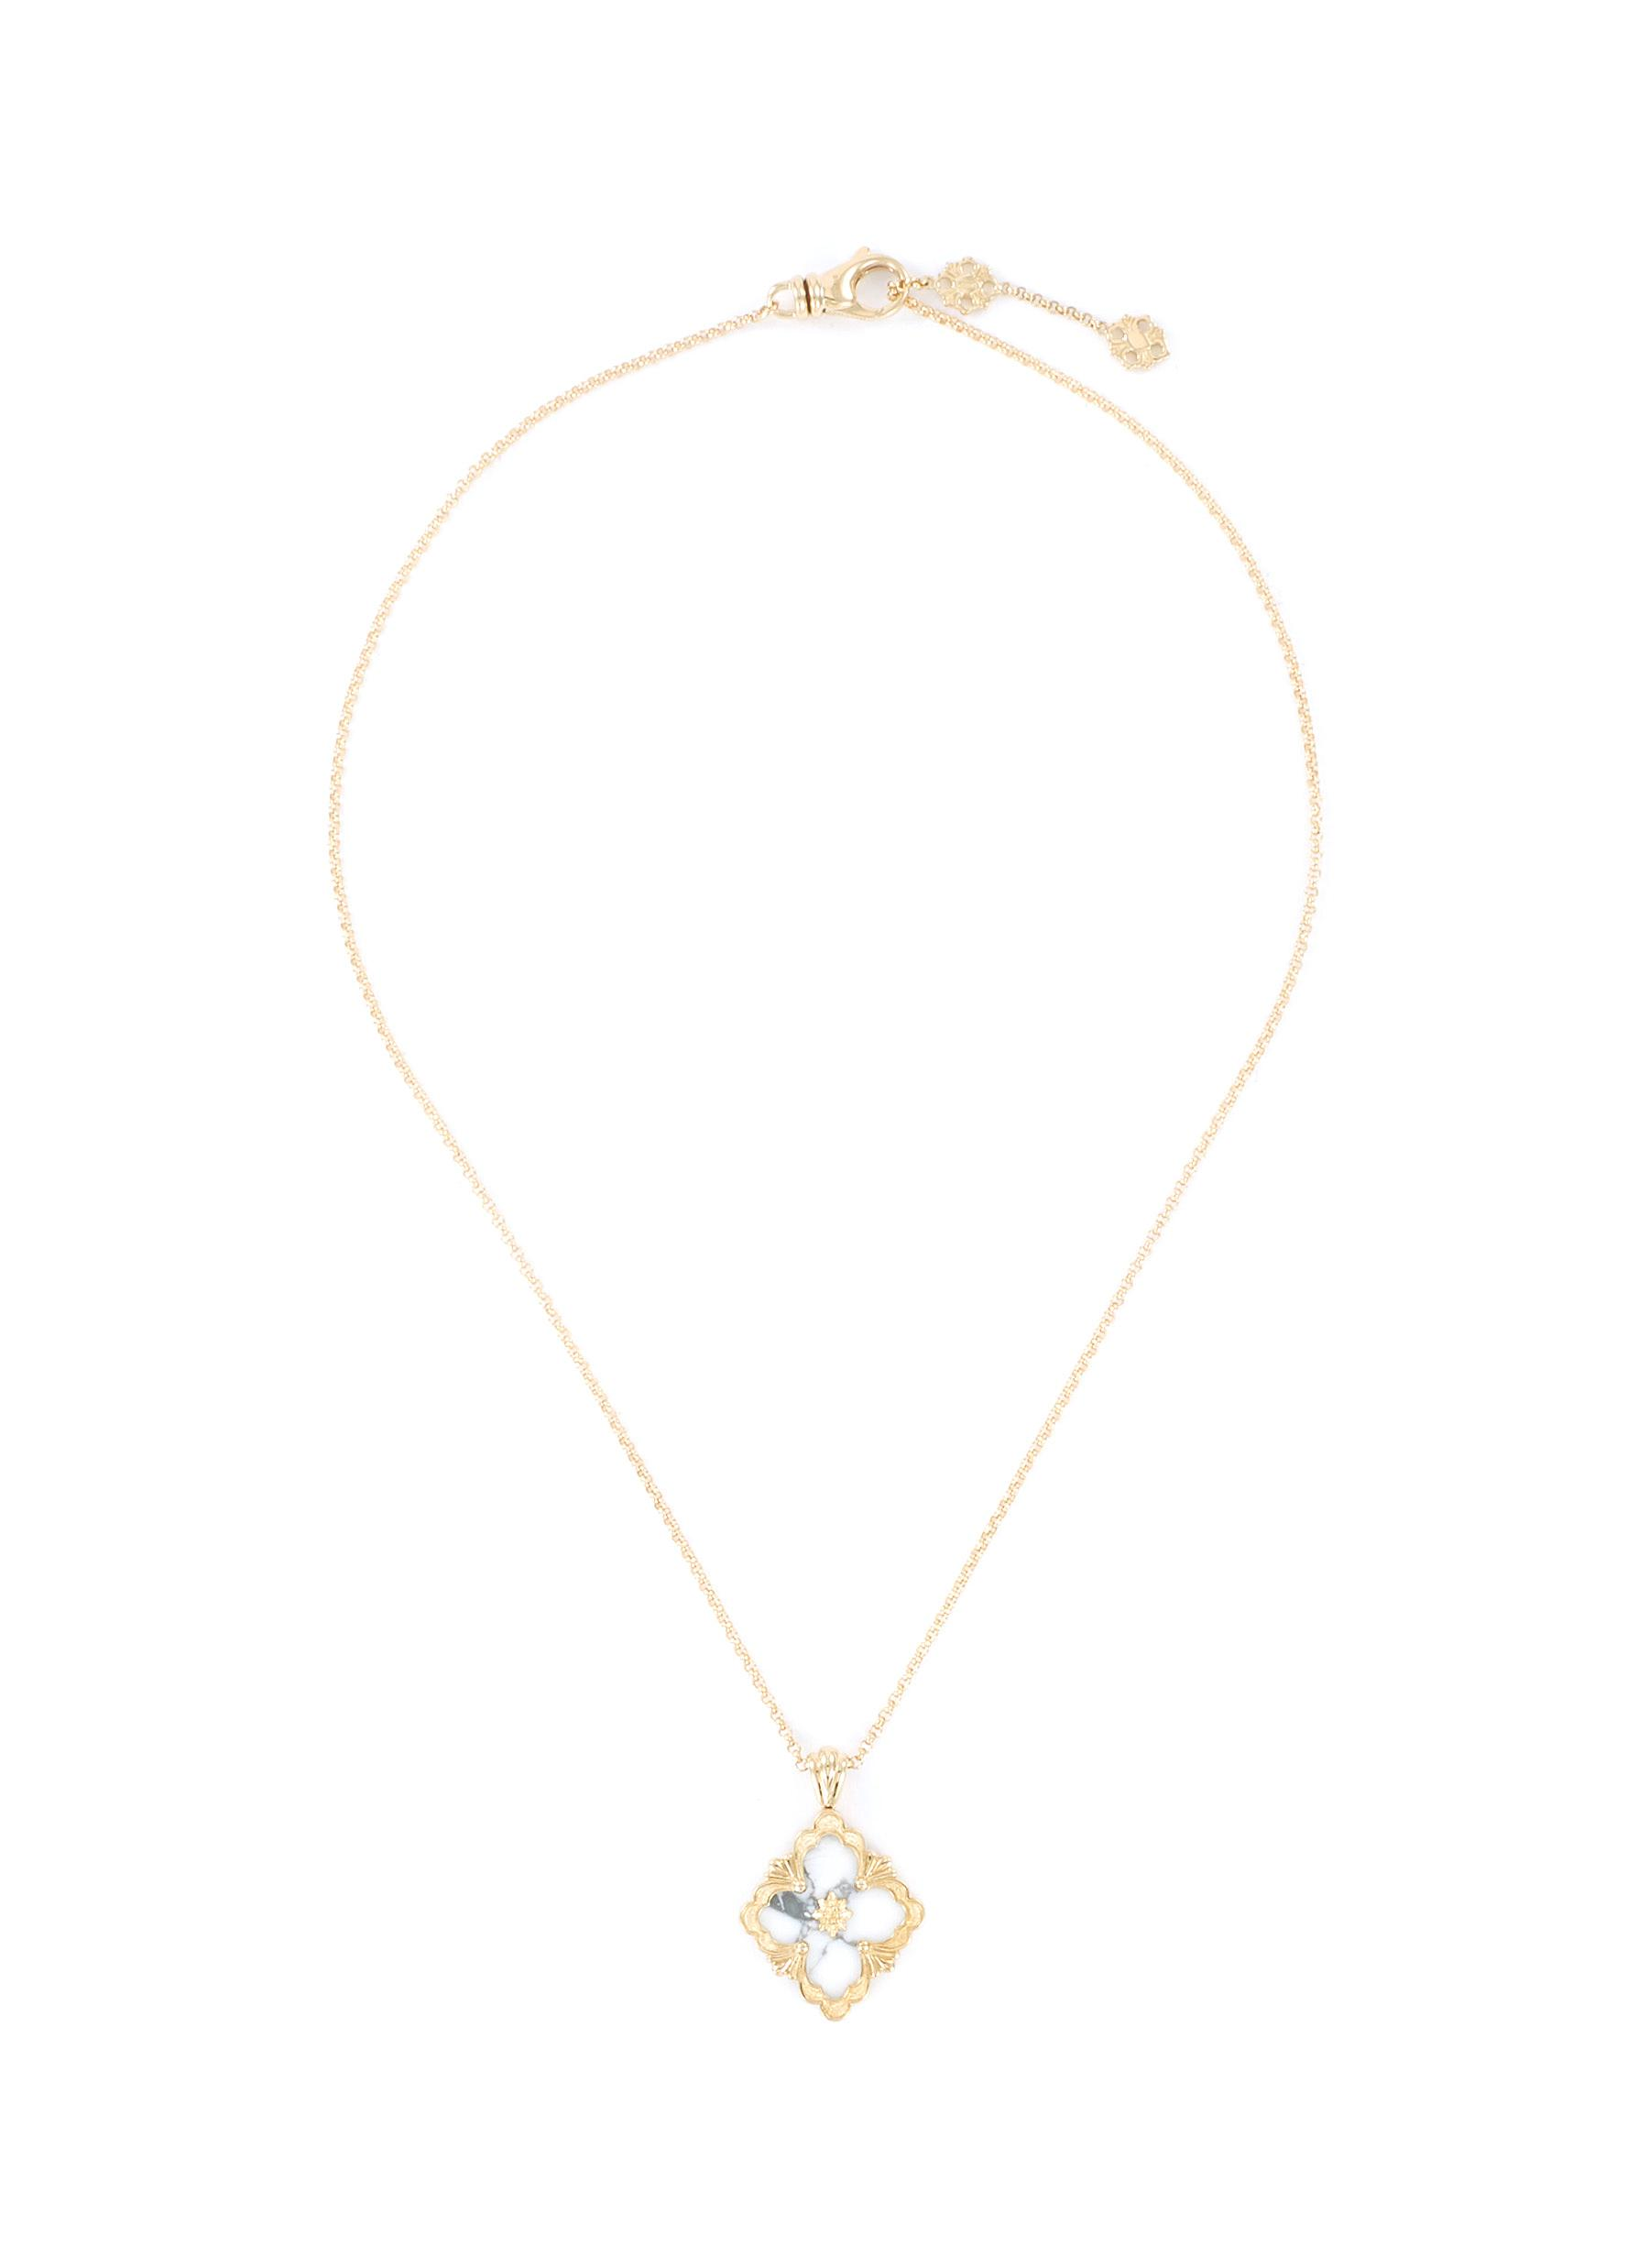 'Opera Color' howlite yellow gold necklace